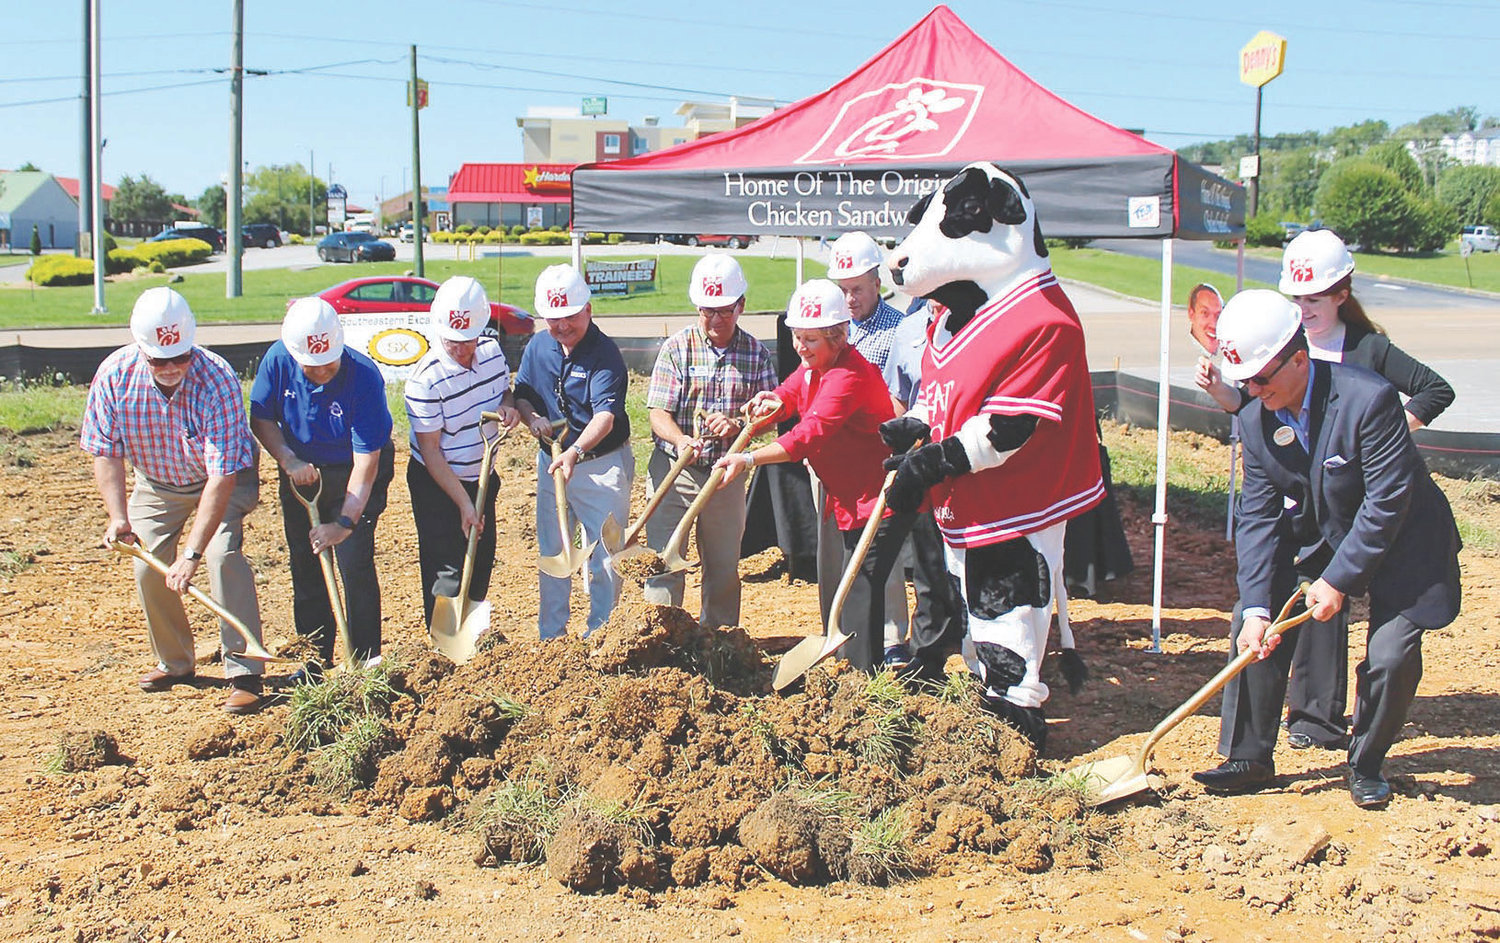 THE CLEVELAND/BRADLEY County Chamber held a groundbreaking ceremony recently for the new Chick-fil-A restaurant being constructed at 1000 Paul Huff Parkway, adjacent to the Target shopping center. This will be Chick-fil-A's second location in Cleveland, the other on Keith Street at Ocoee Crossing. W.H. Bass Inc. Inc. of Duluth, Ga.,will be the contractor for the $1.2 million construction project. It will be located between Wendy's and Burger King, and across Paul Huff Parkway from Hardee's and Denny's. The groundbreaking is indicative of continued construction activity in the Cleveland and Bradley County community.